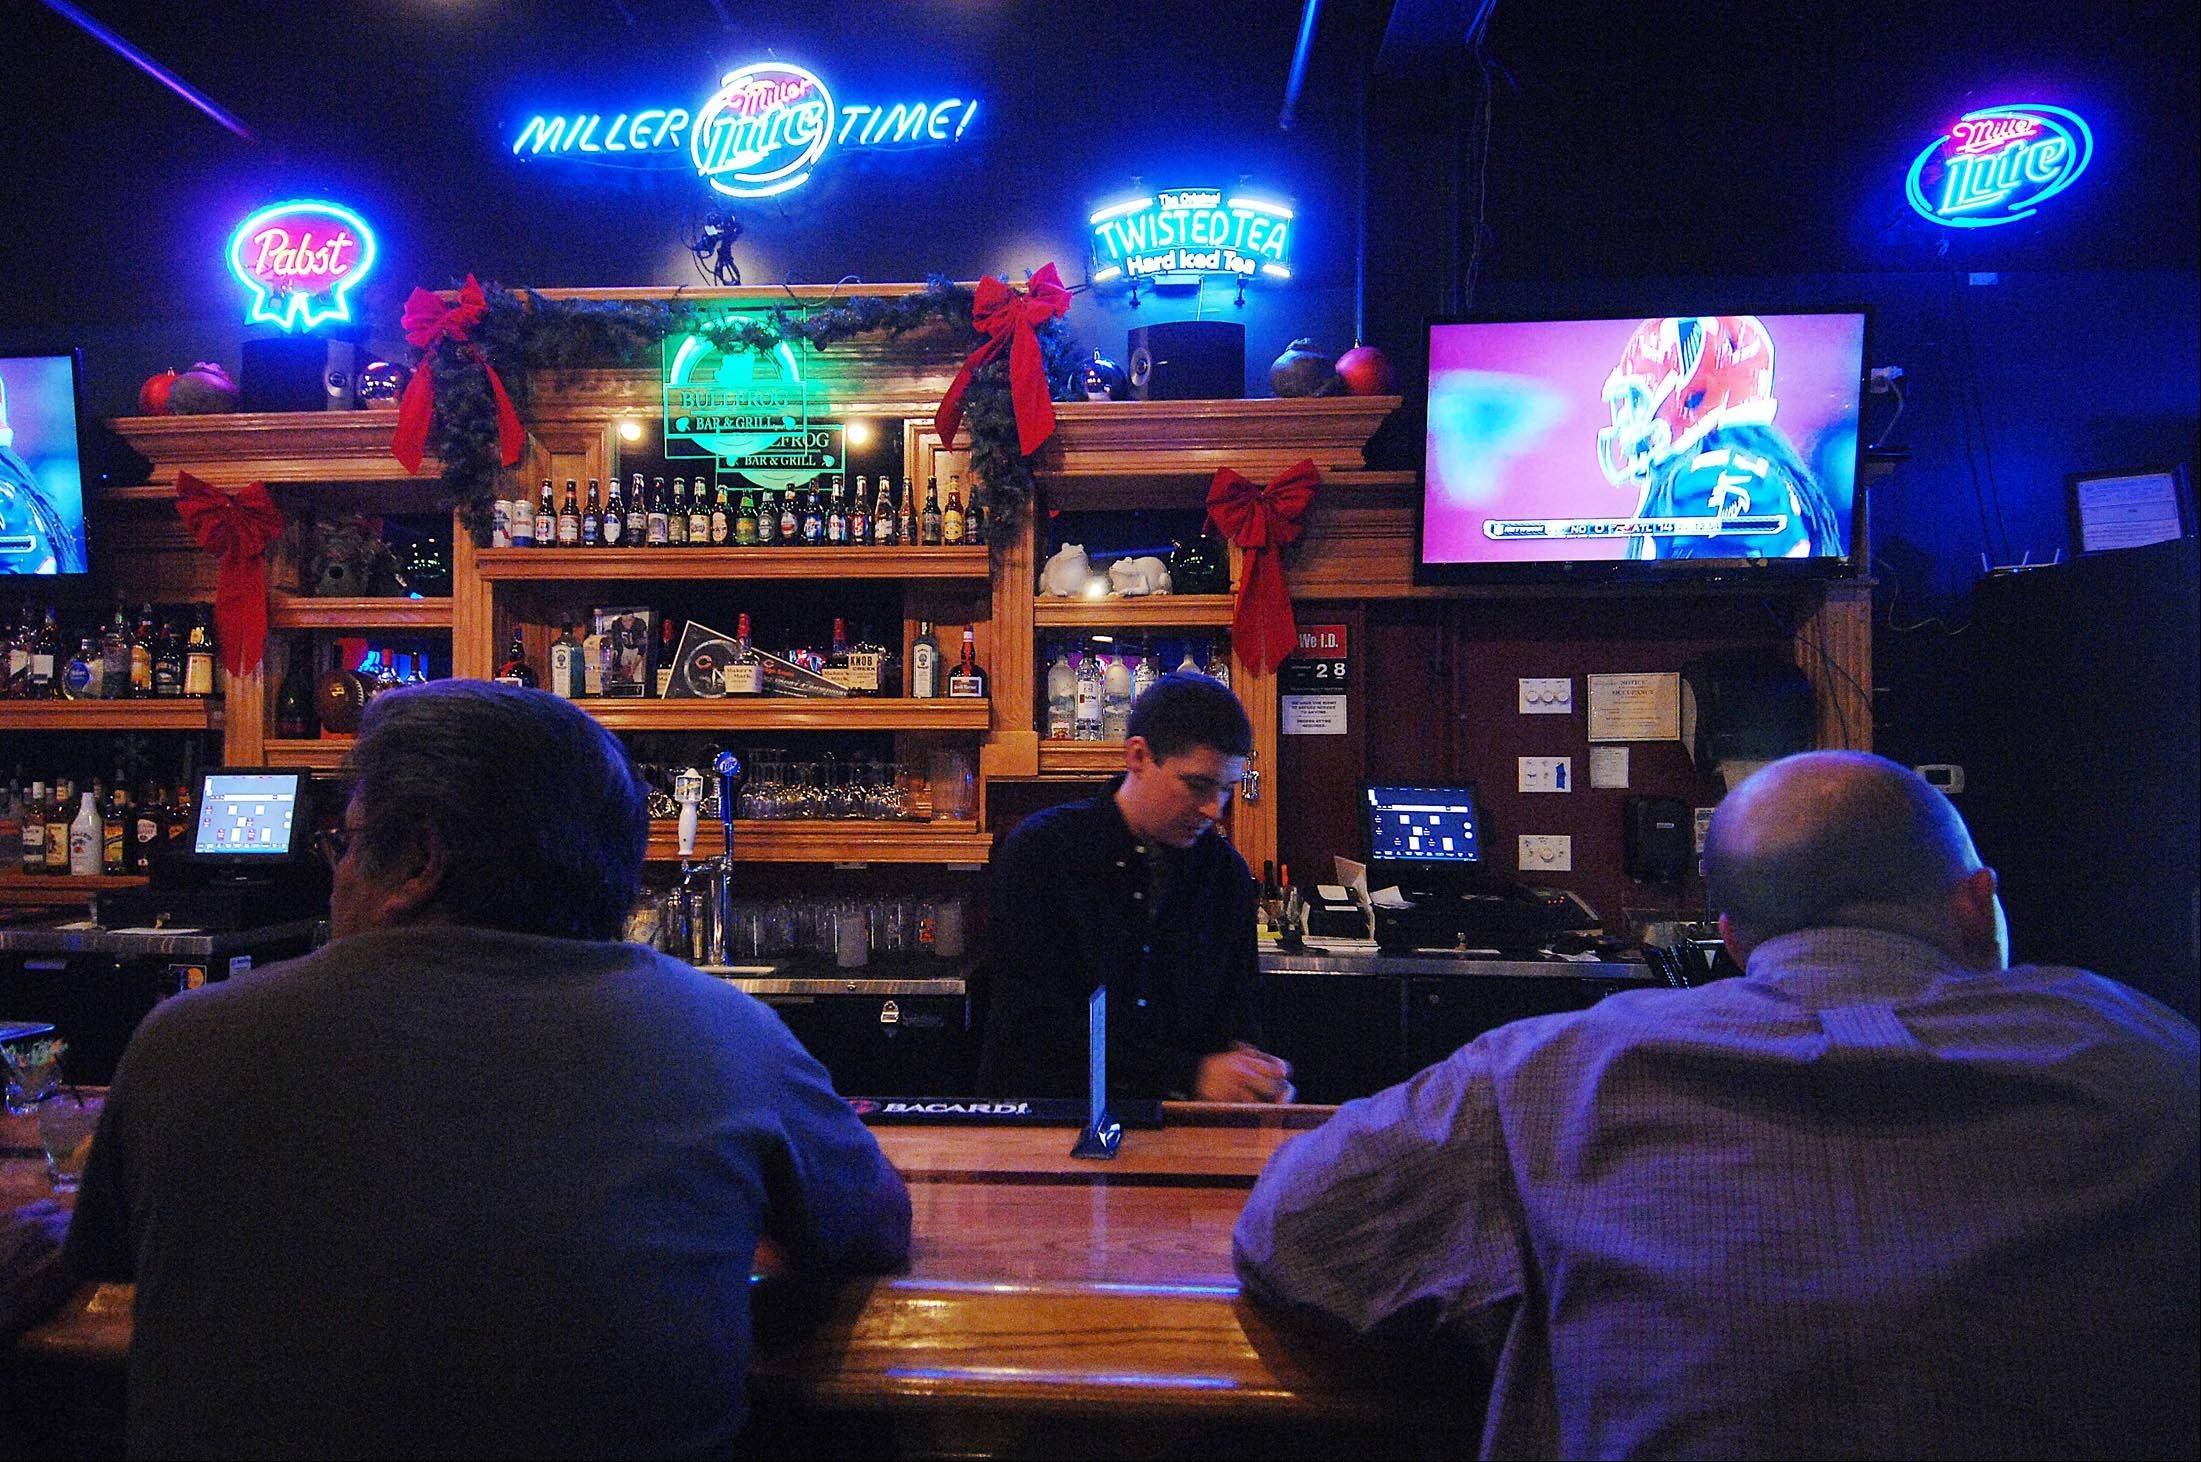 Enjoy a variety of Super Bowl bar specials at The Chubby Bullfrog in West Dundee.